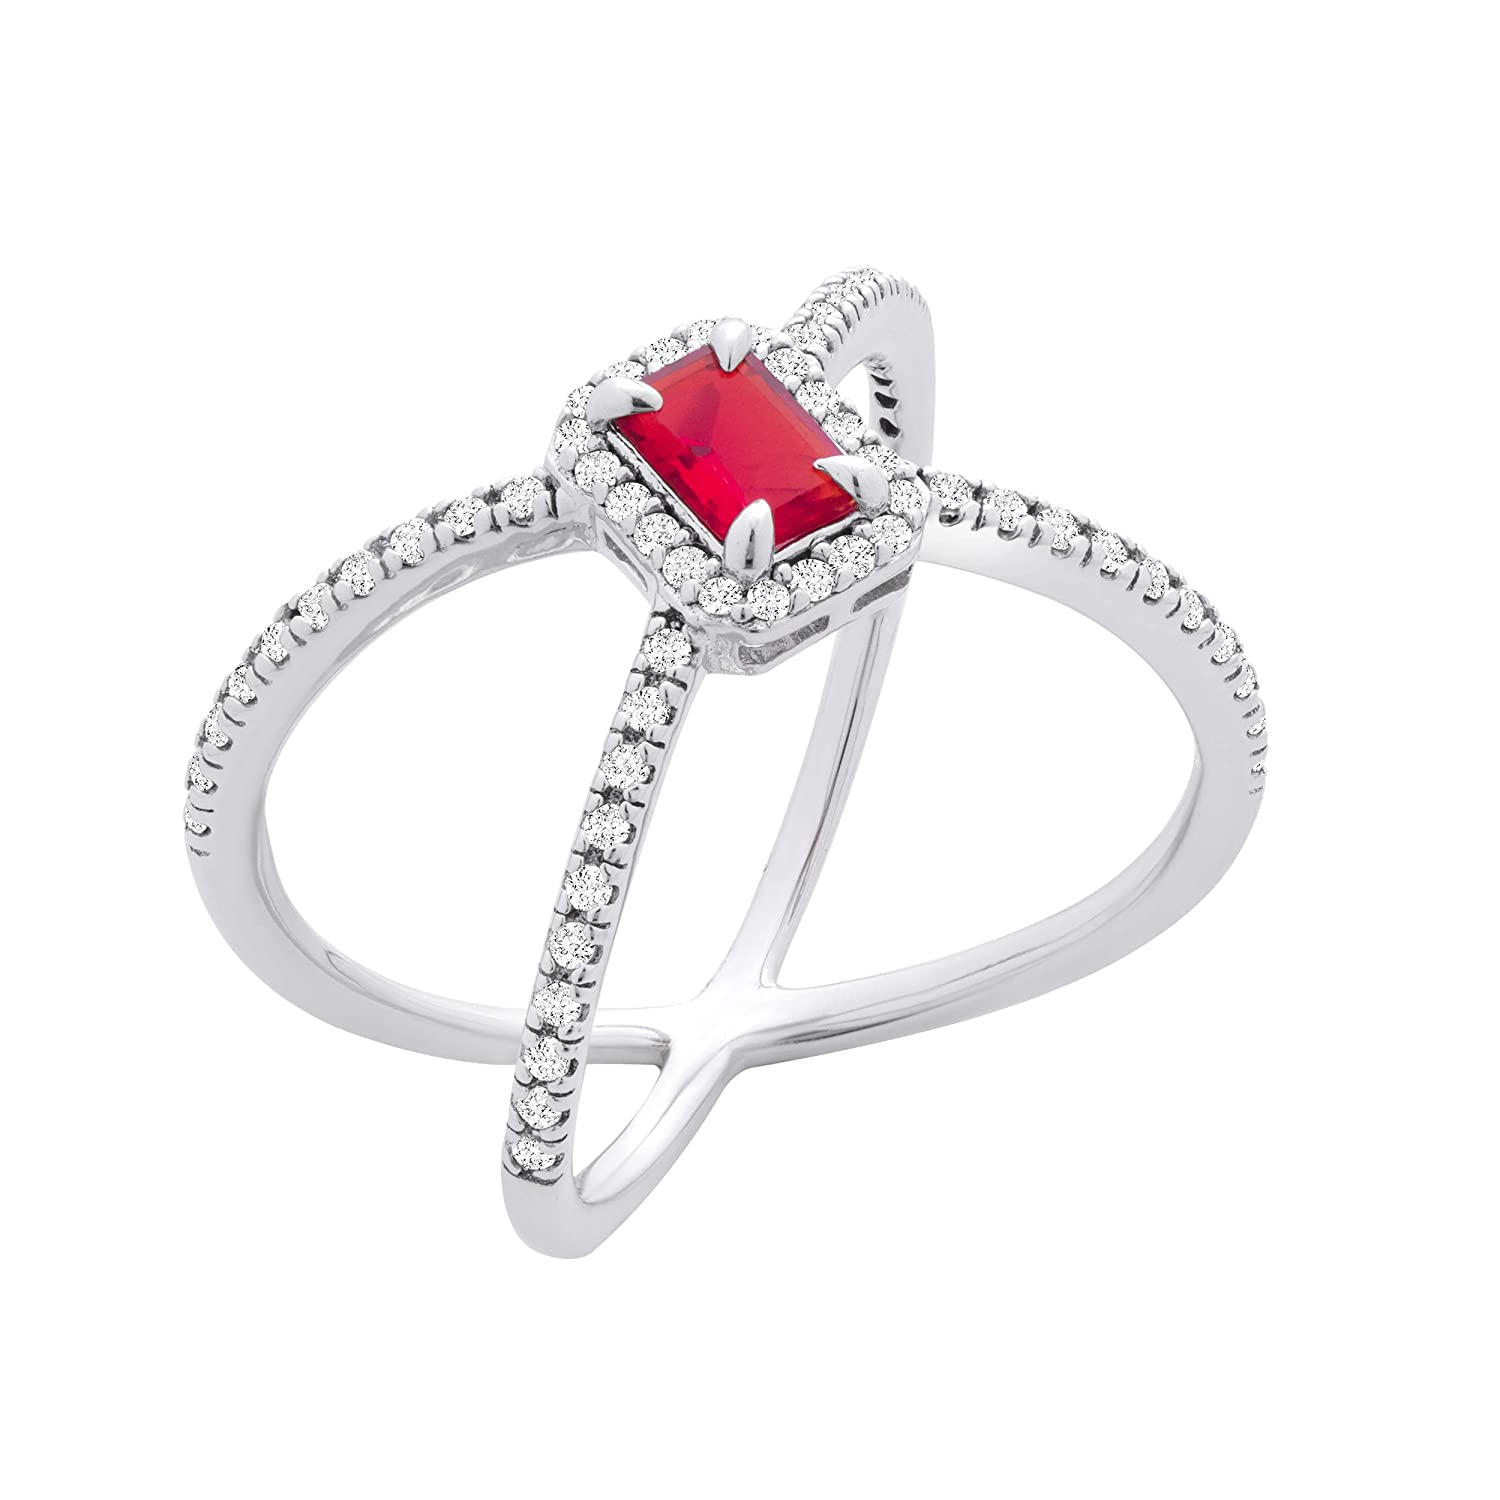 Chic Jewels RG2017-9 Sterling Silver Cubic Zirconia XCriss Cross Ring With An Red Emerald Cut Stone